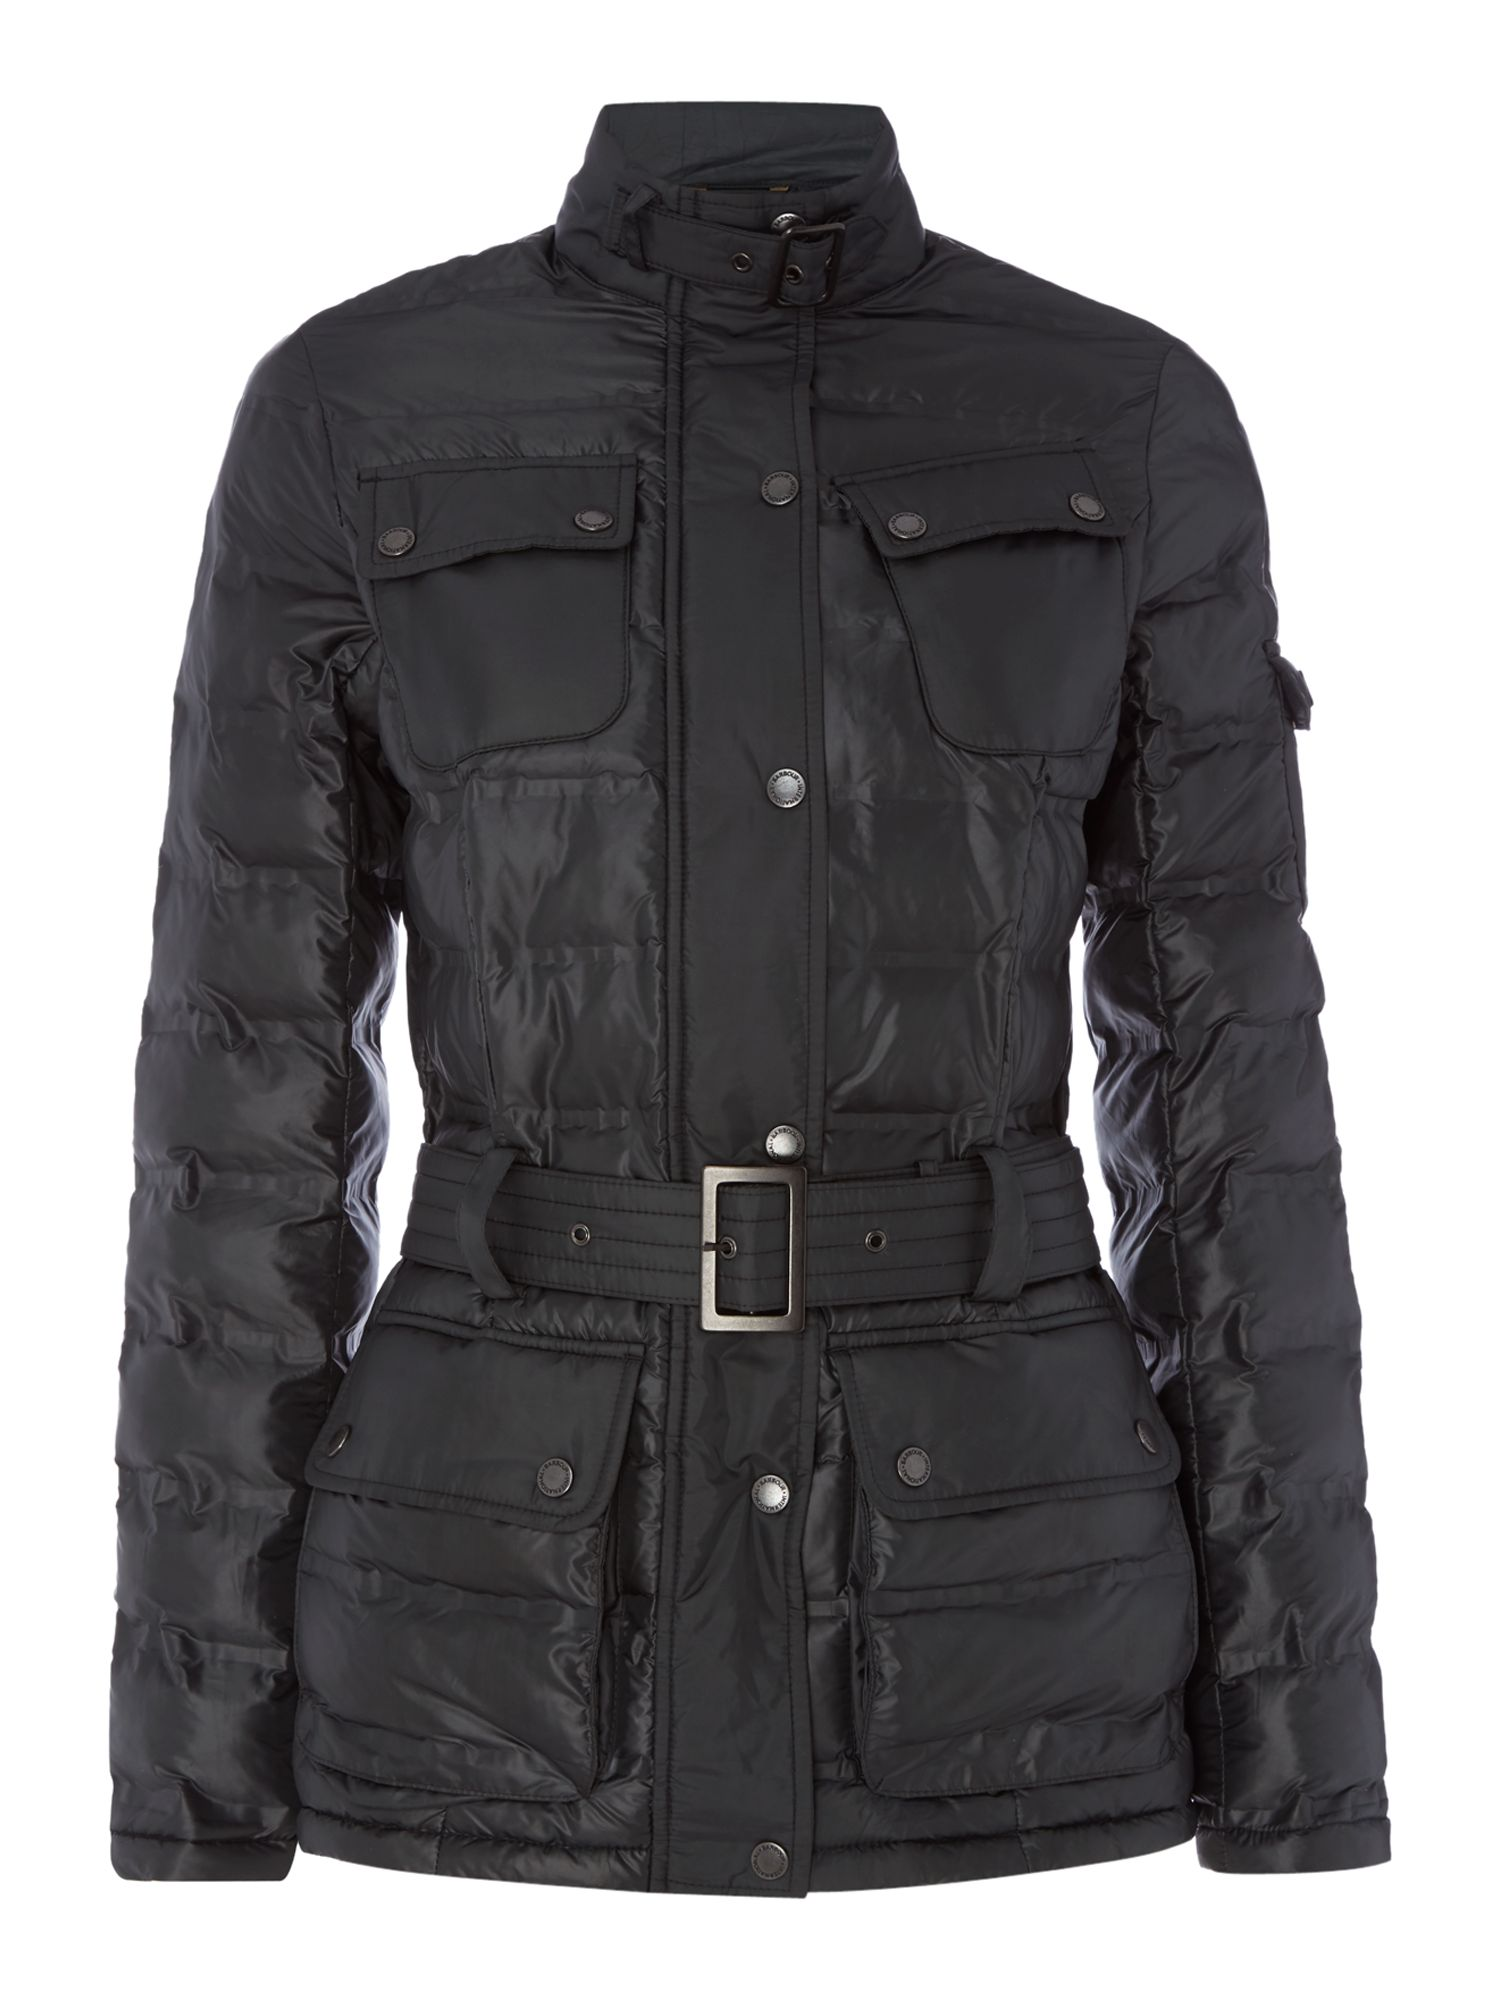 Barbour Barbour international fairing parka Black